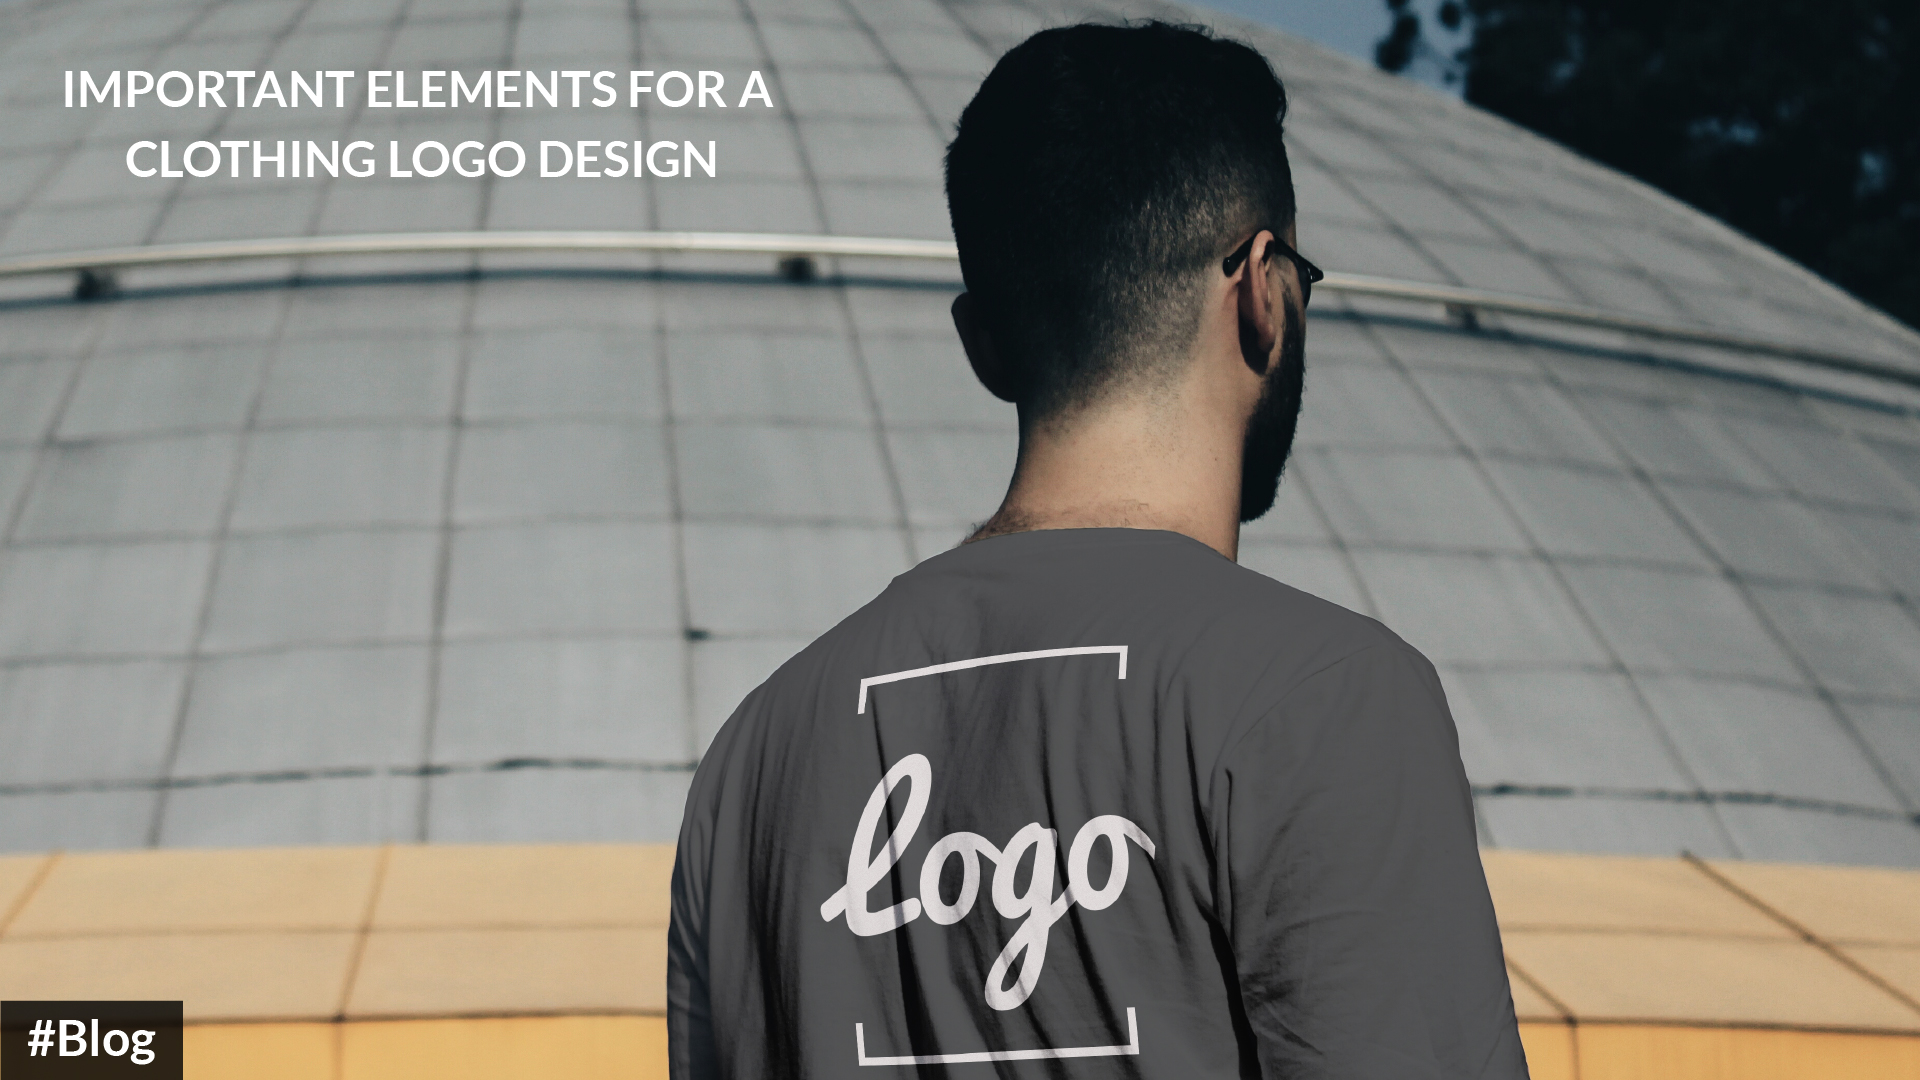 Important Elements for a Clothing Logo Design